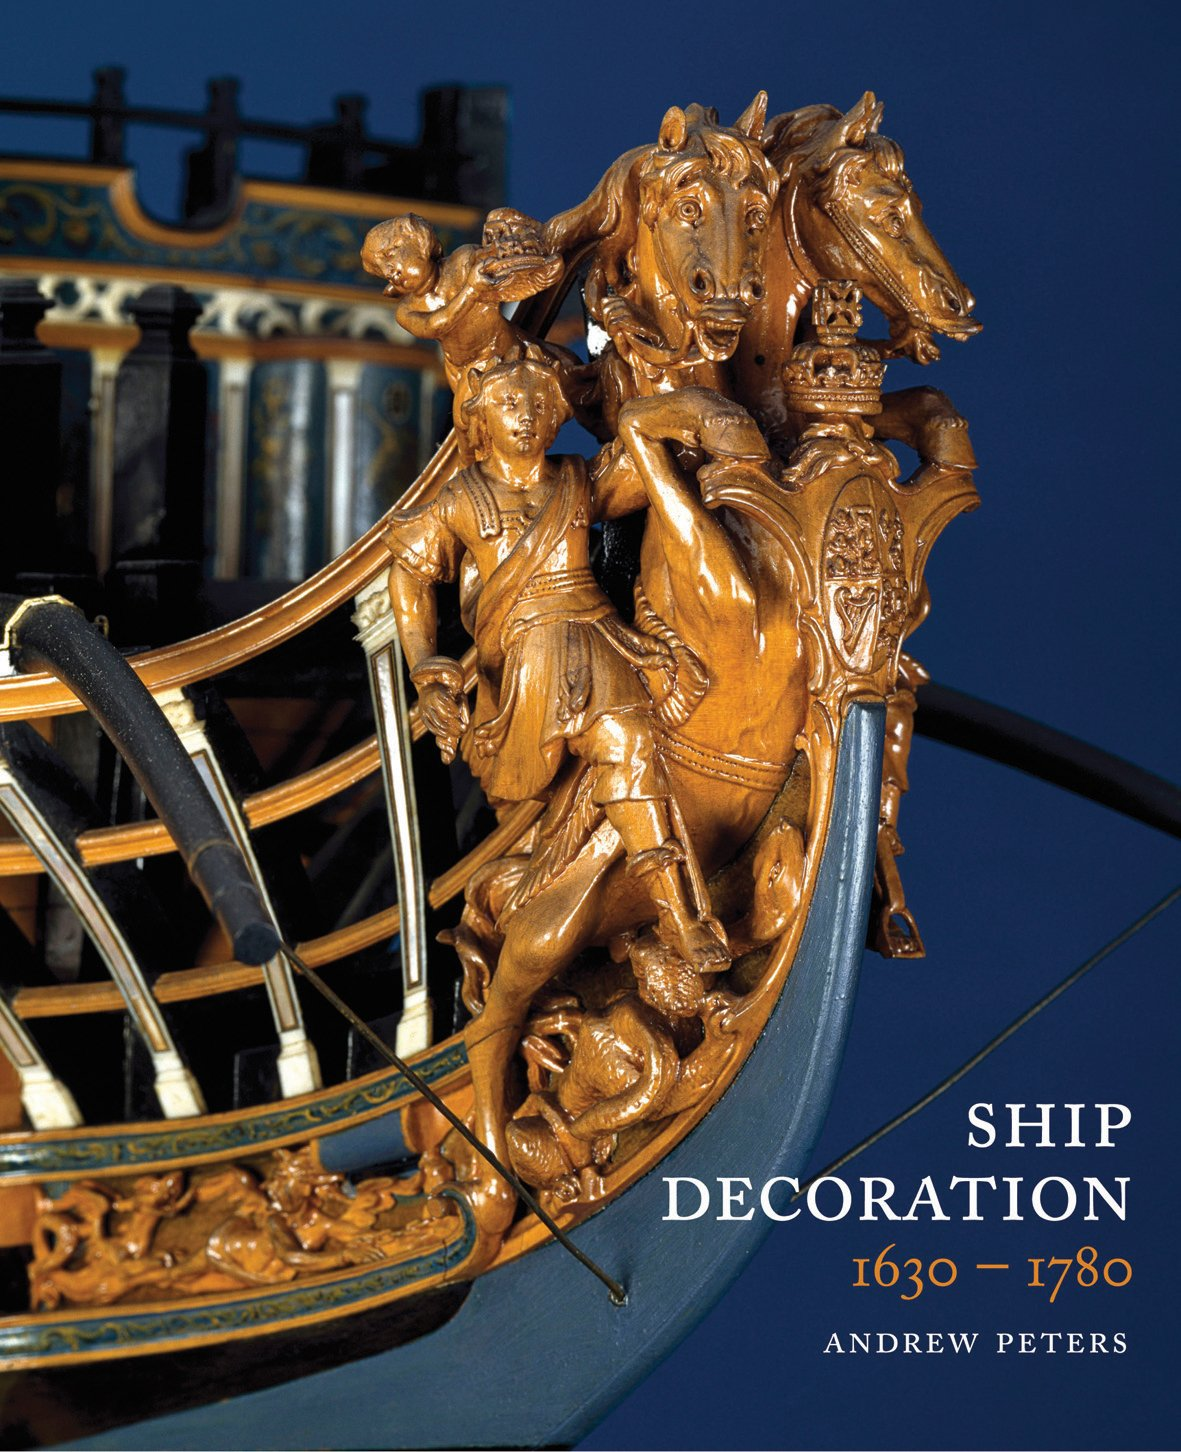 Ship Decoration 1630 1780